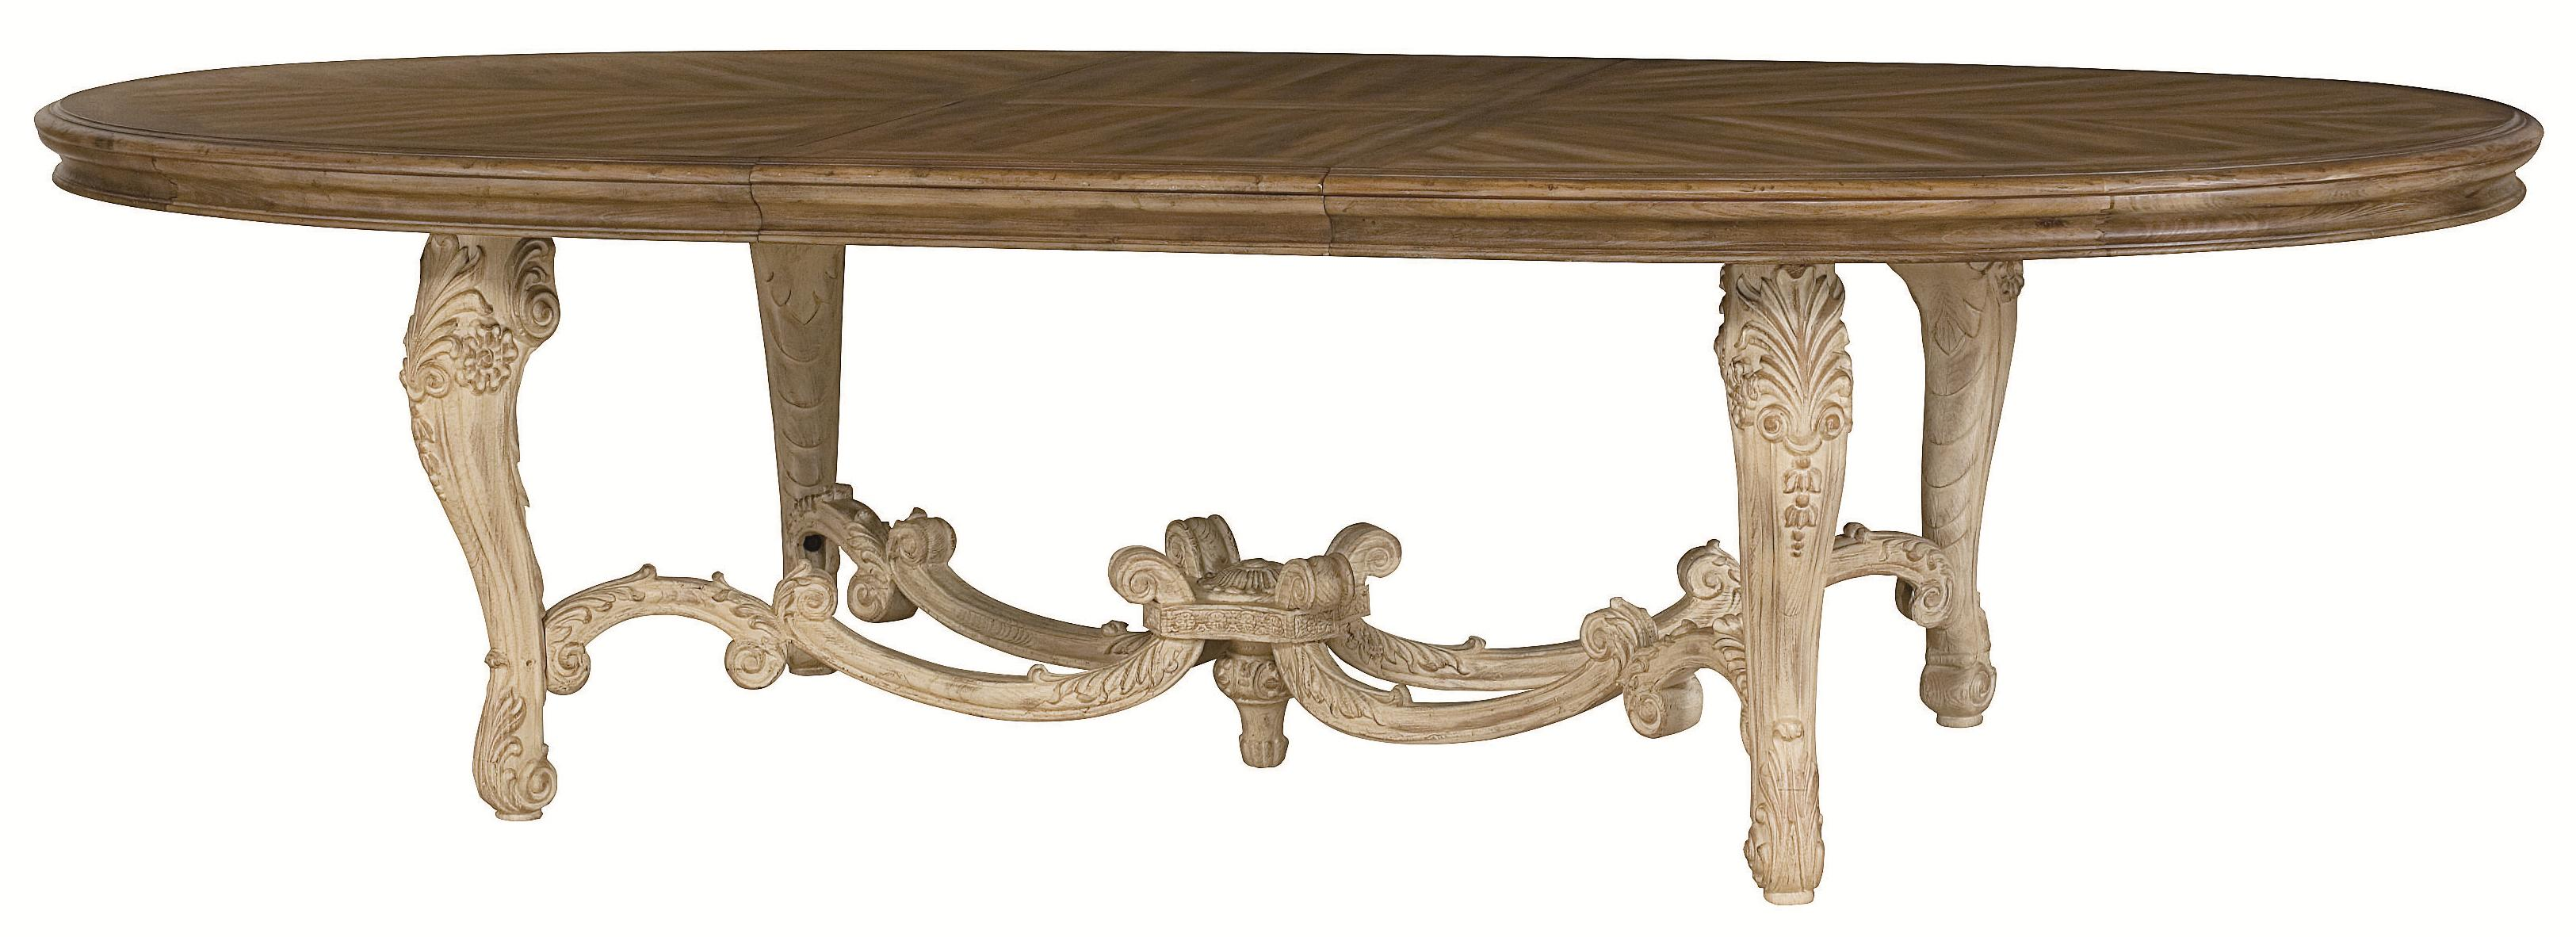 Oval Dining Table with Carved Legs & Stretchers by American Drew